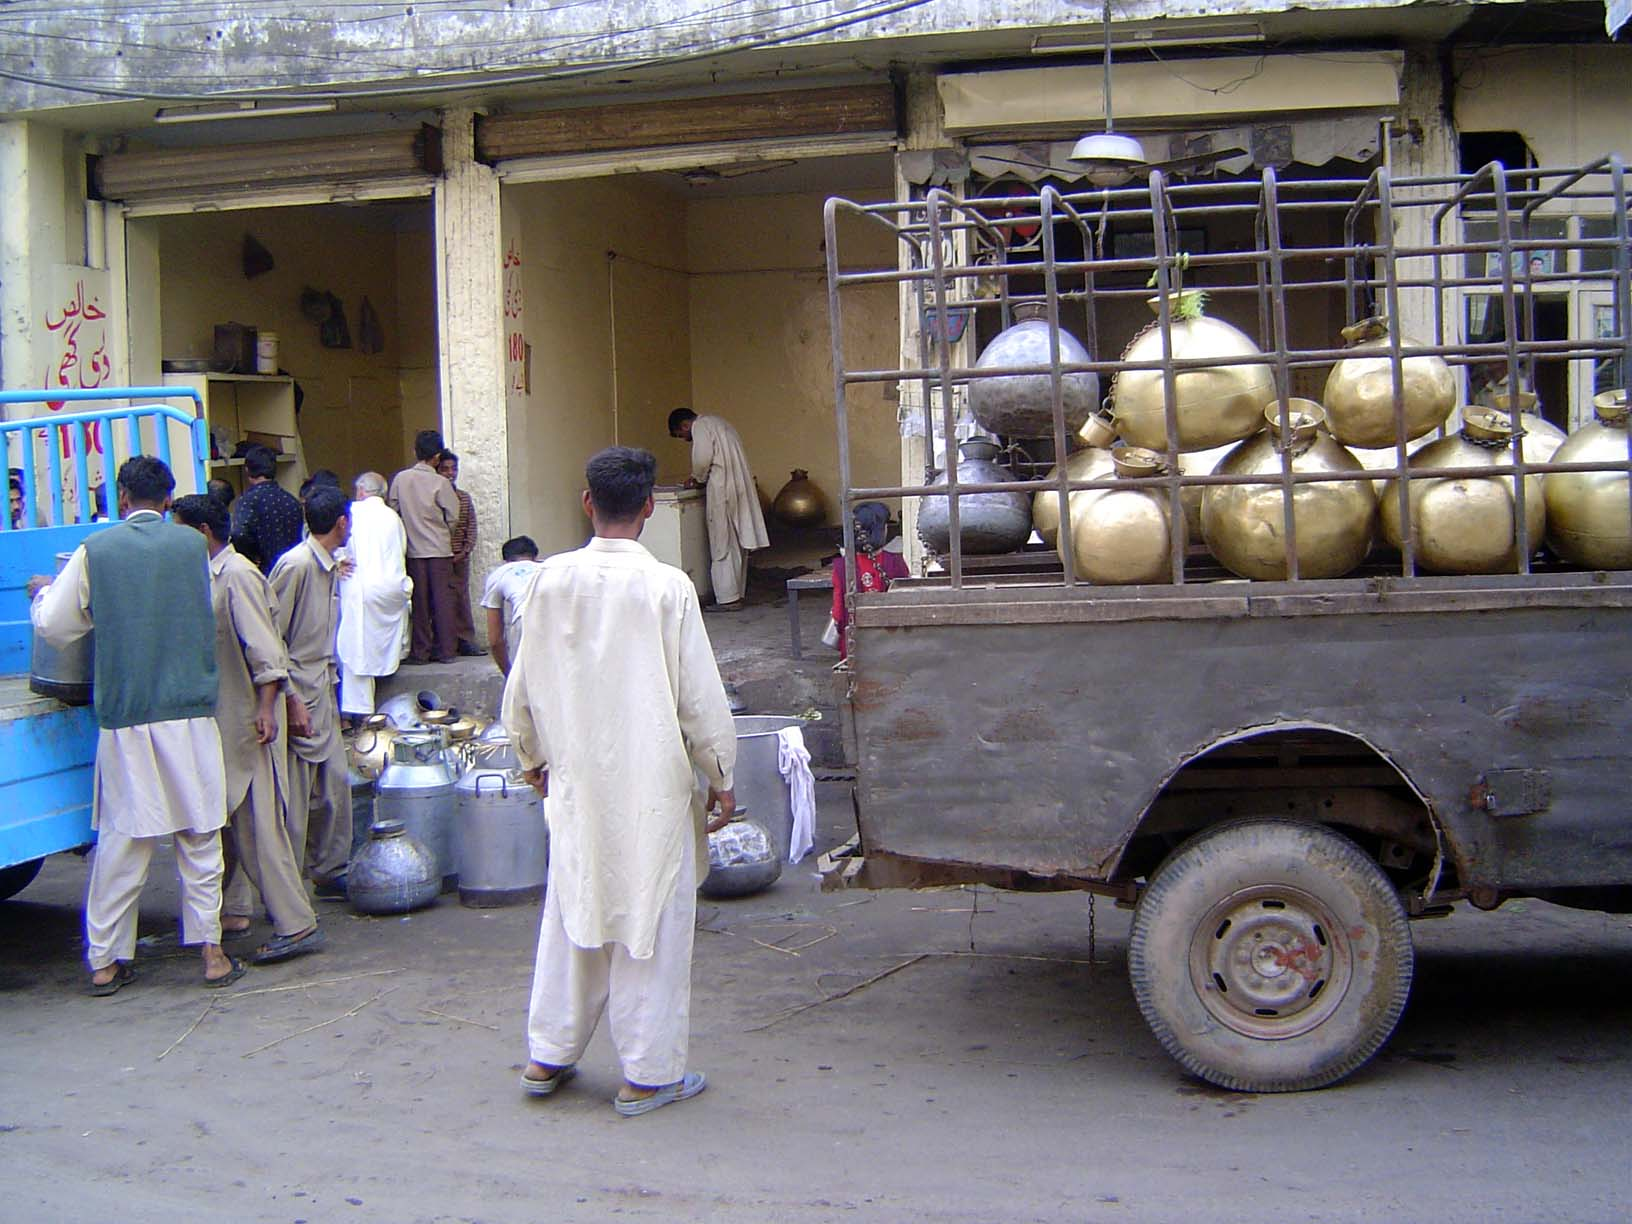 Pakistan: Lahore: the Old City